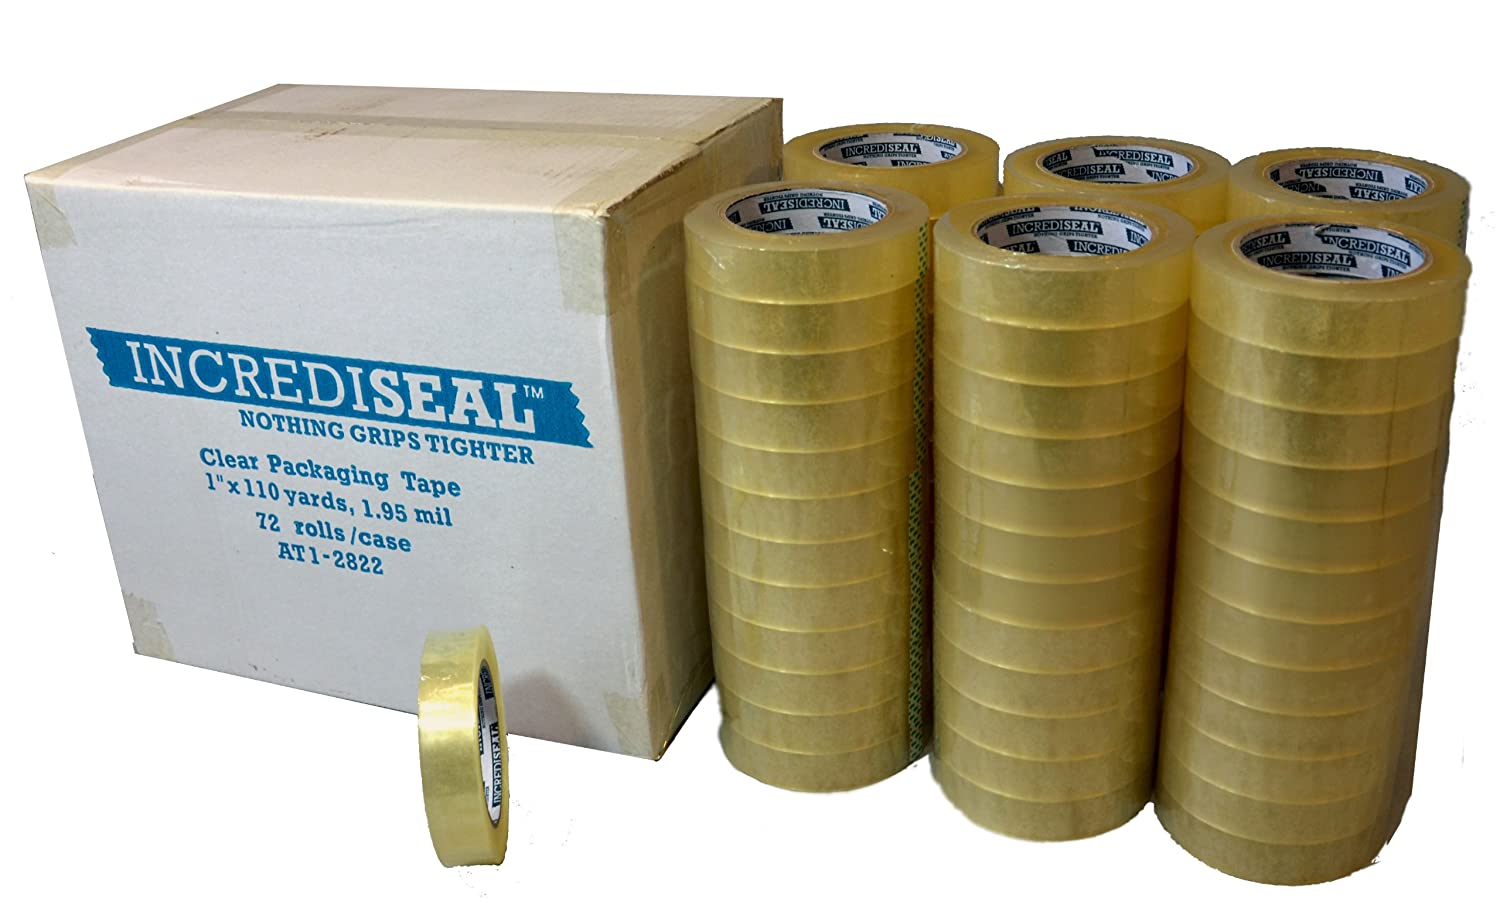 INCREDISEAL 72 Rolls Packaging Tape, 1 Inch x 110 Yards x 1.95 Mil Clear by INCREDISEAL  B00CIQL2DS